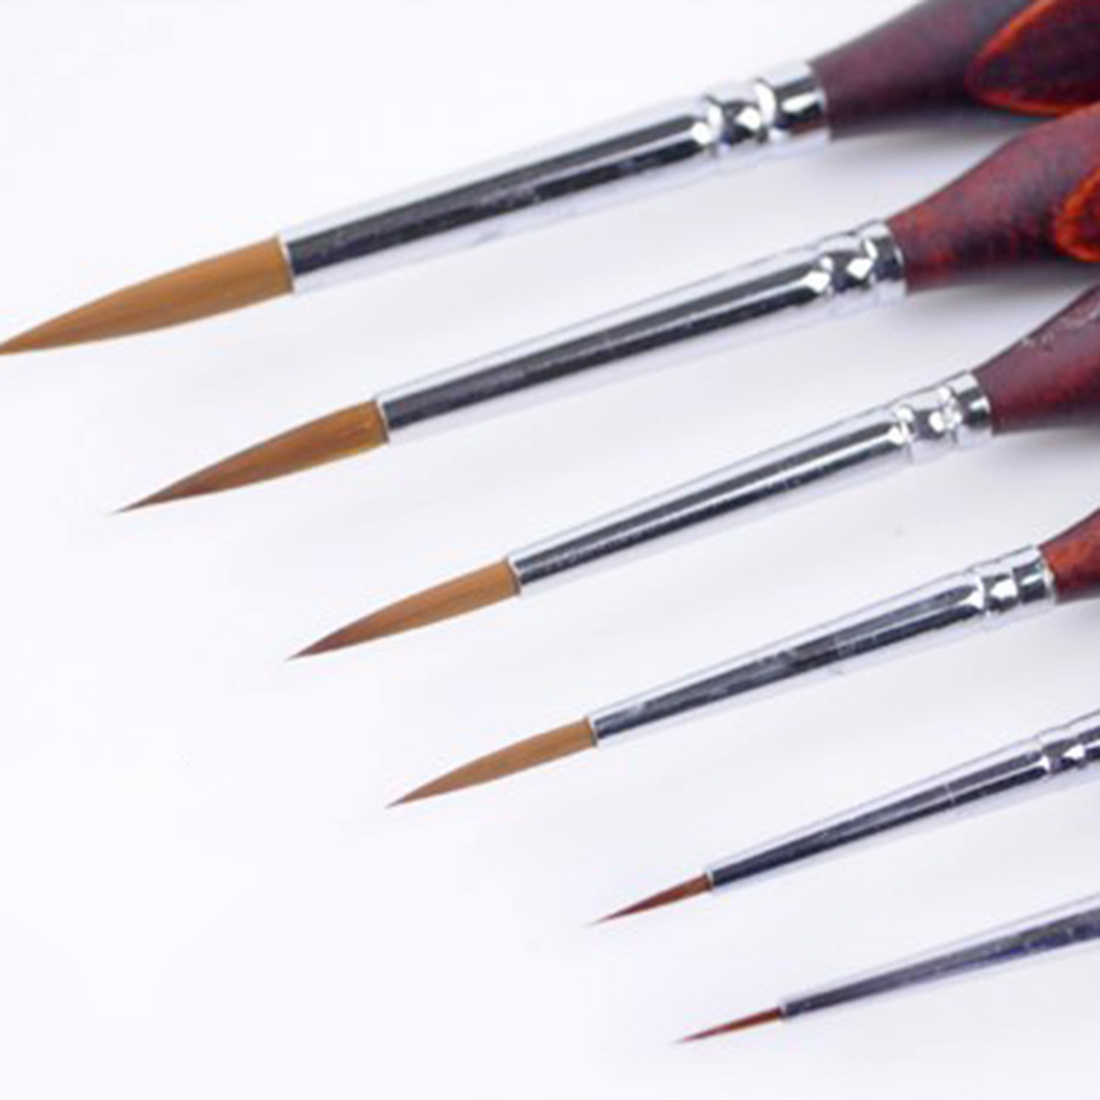 6Pcs Miniature Paint Brushes Set For Fine Detailing And Rock Painting Models Paint By Numbers Supplies Model Building Tool Sets